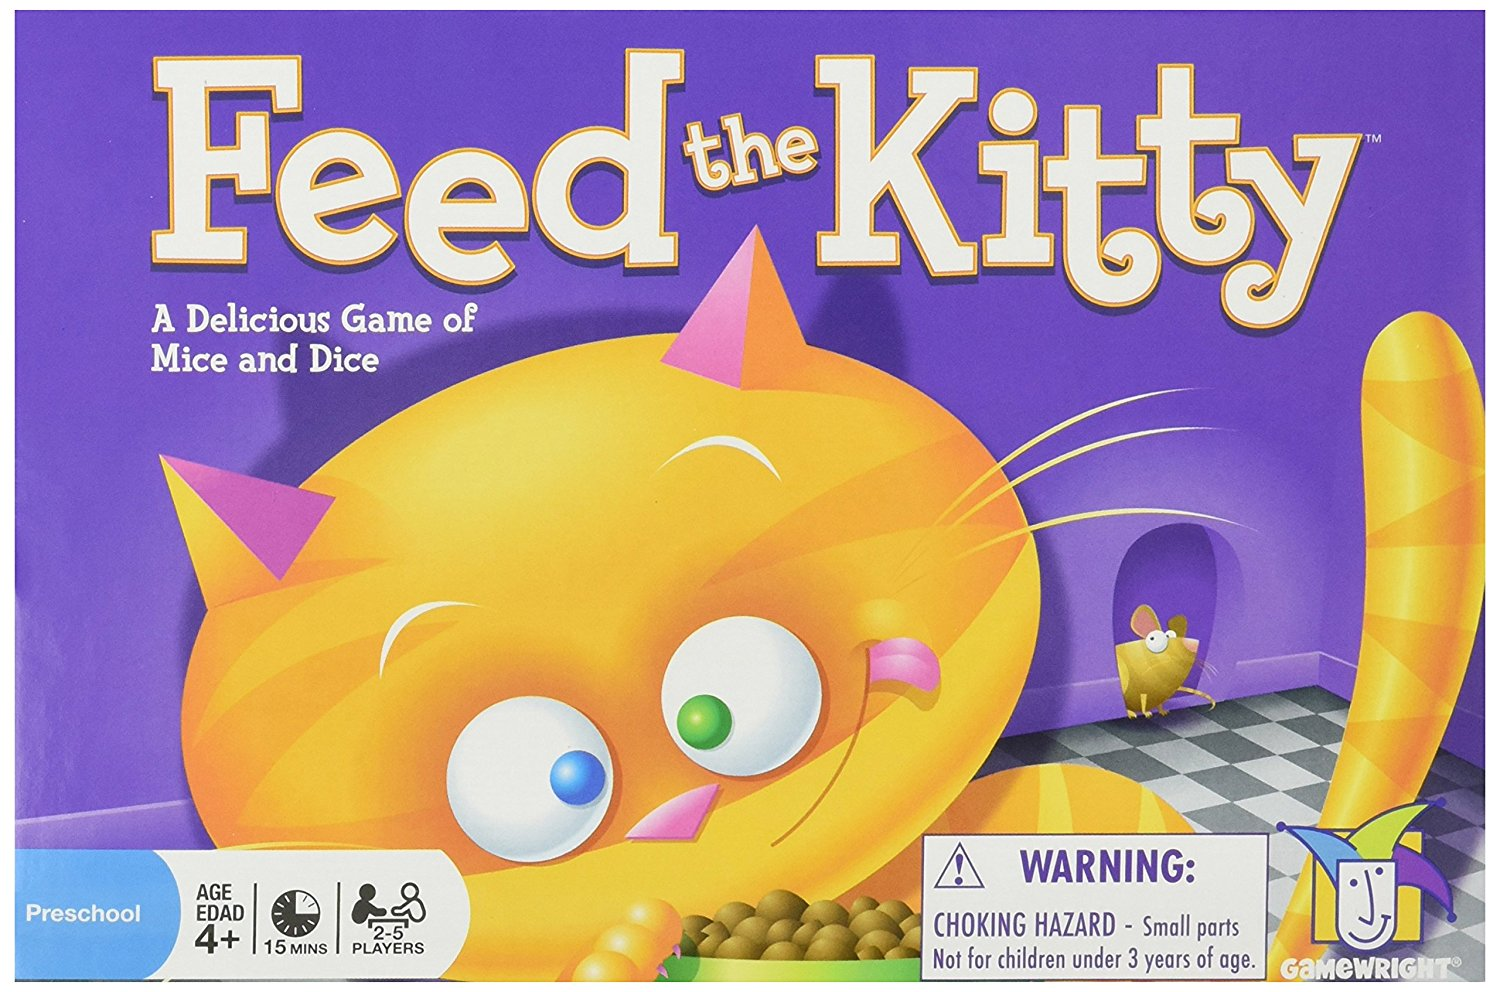 Feed The Kitty, Take All Nuts Purr Meow Stars Friends Builder Go Monkeys Tunes Matching Board Tree Feed Cute players... by